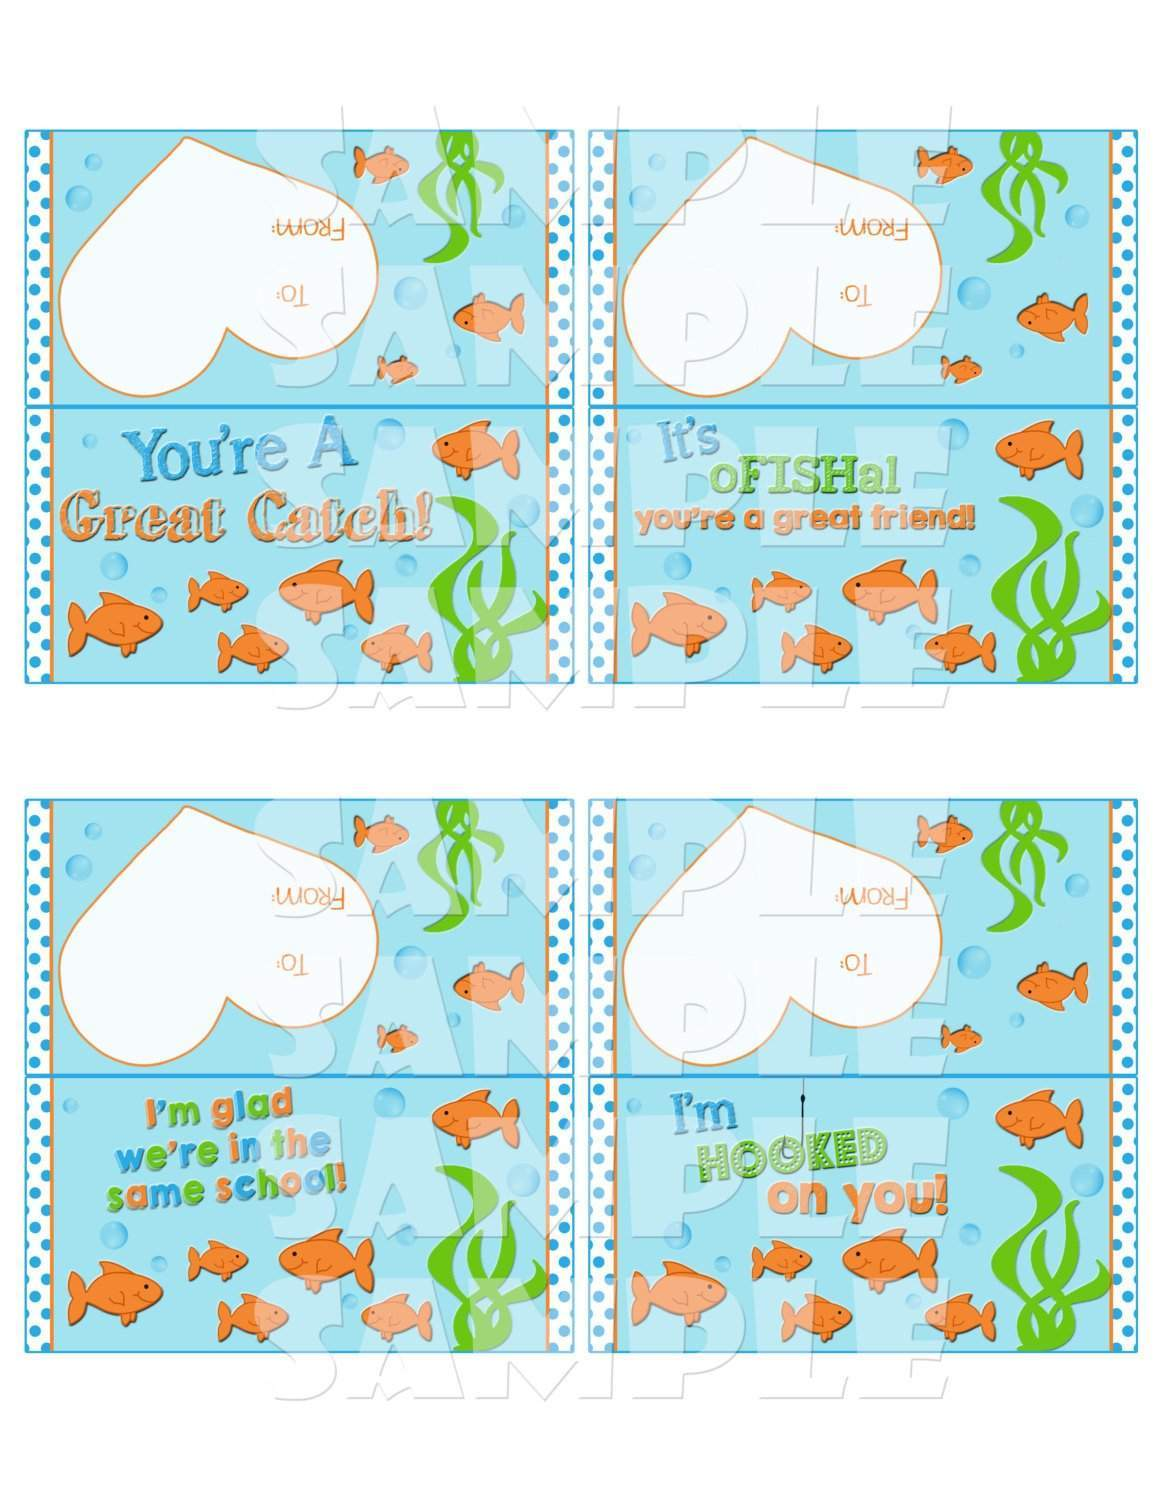 graphic regarding Goldfish Valentine Printable called Goldfish Valentine Address Bag Toppers